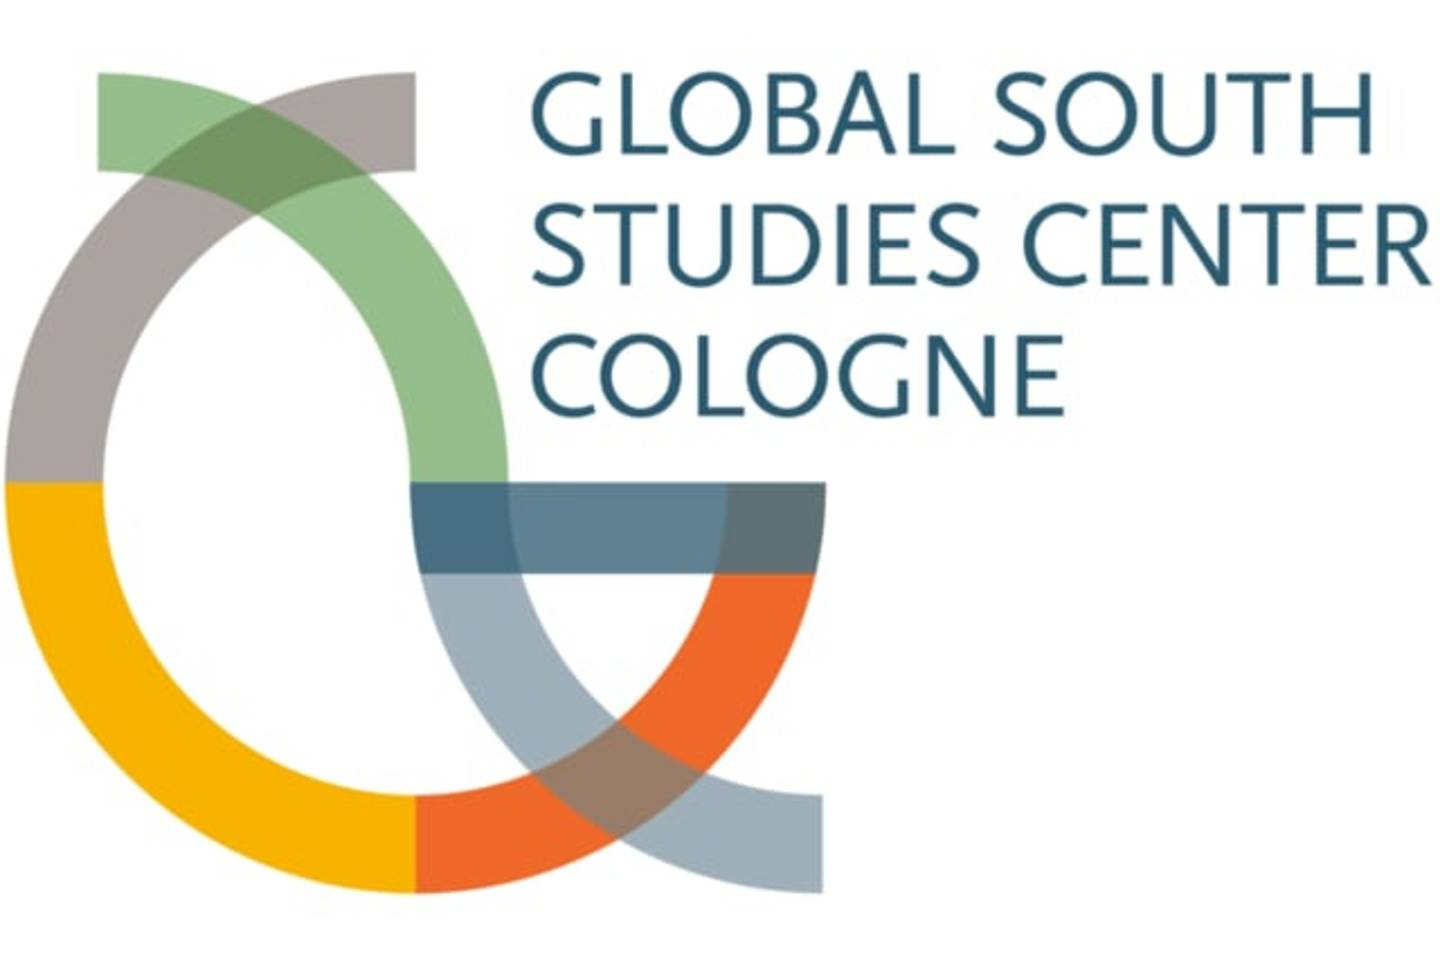 Global South Studies Center Cologne